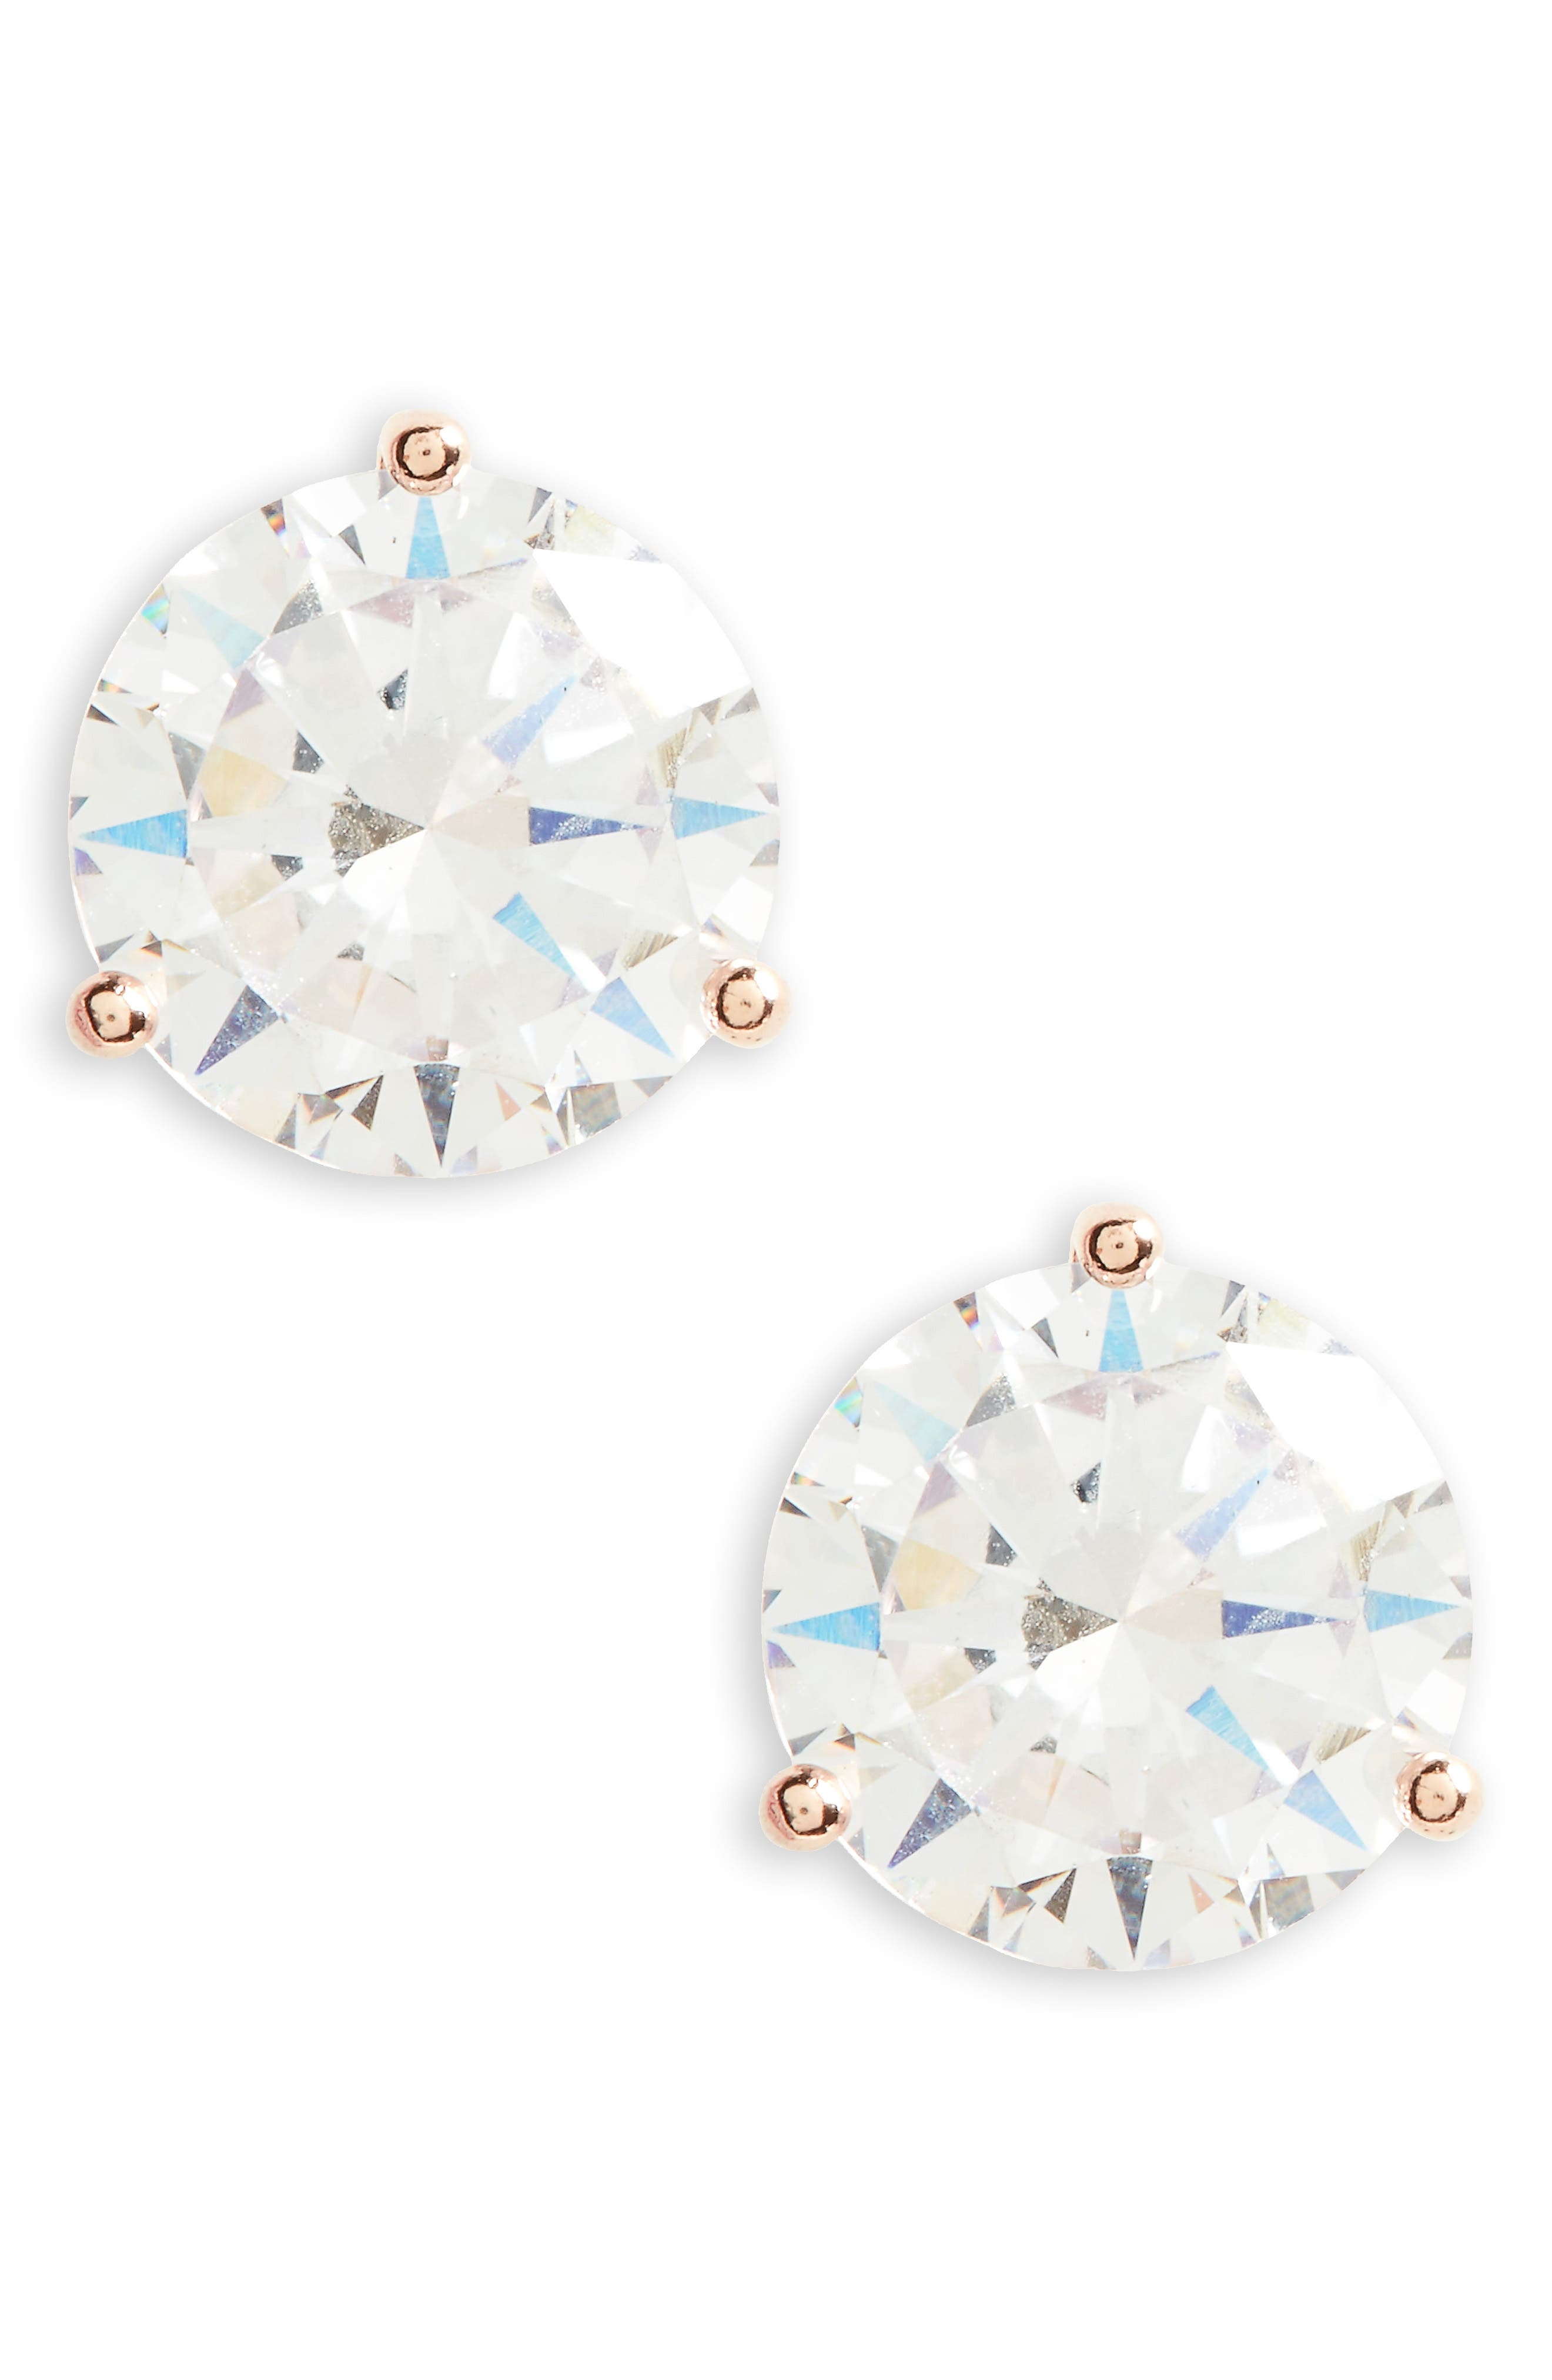 6ct tw Cubic Zirconia Stud Earrings,                             Main thumbnail 1, color,                             Clear- Rose Gold